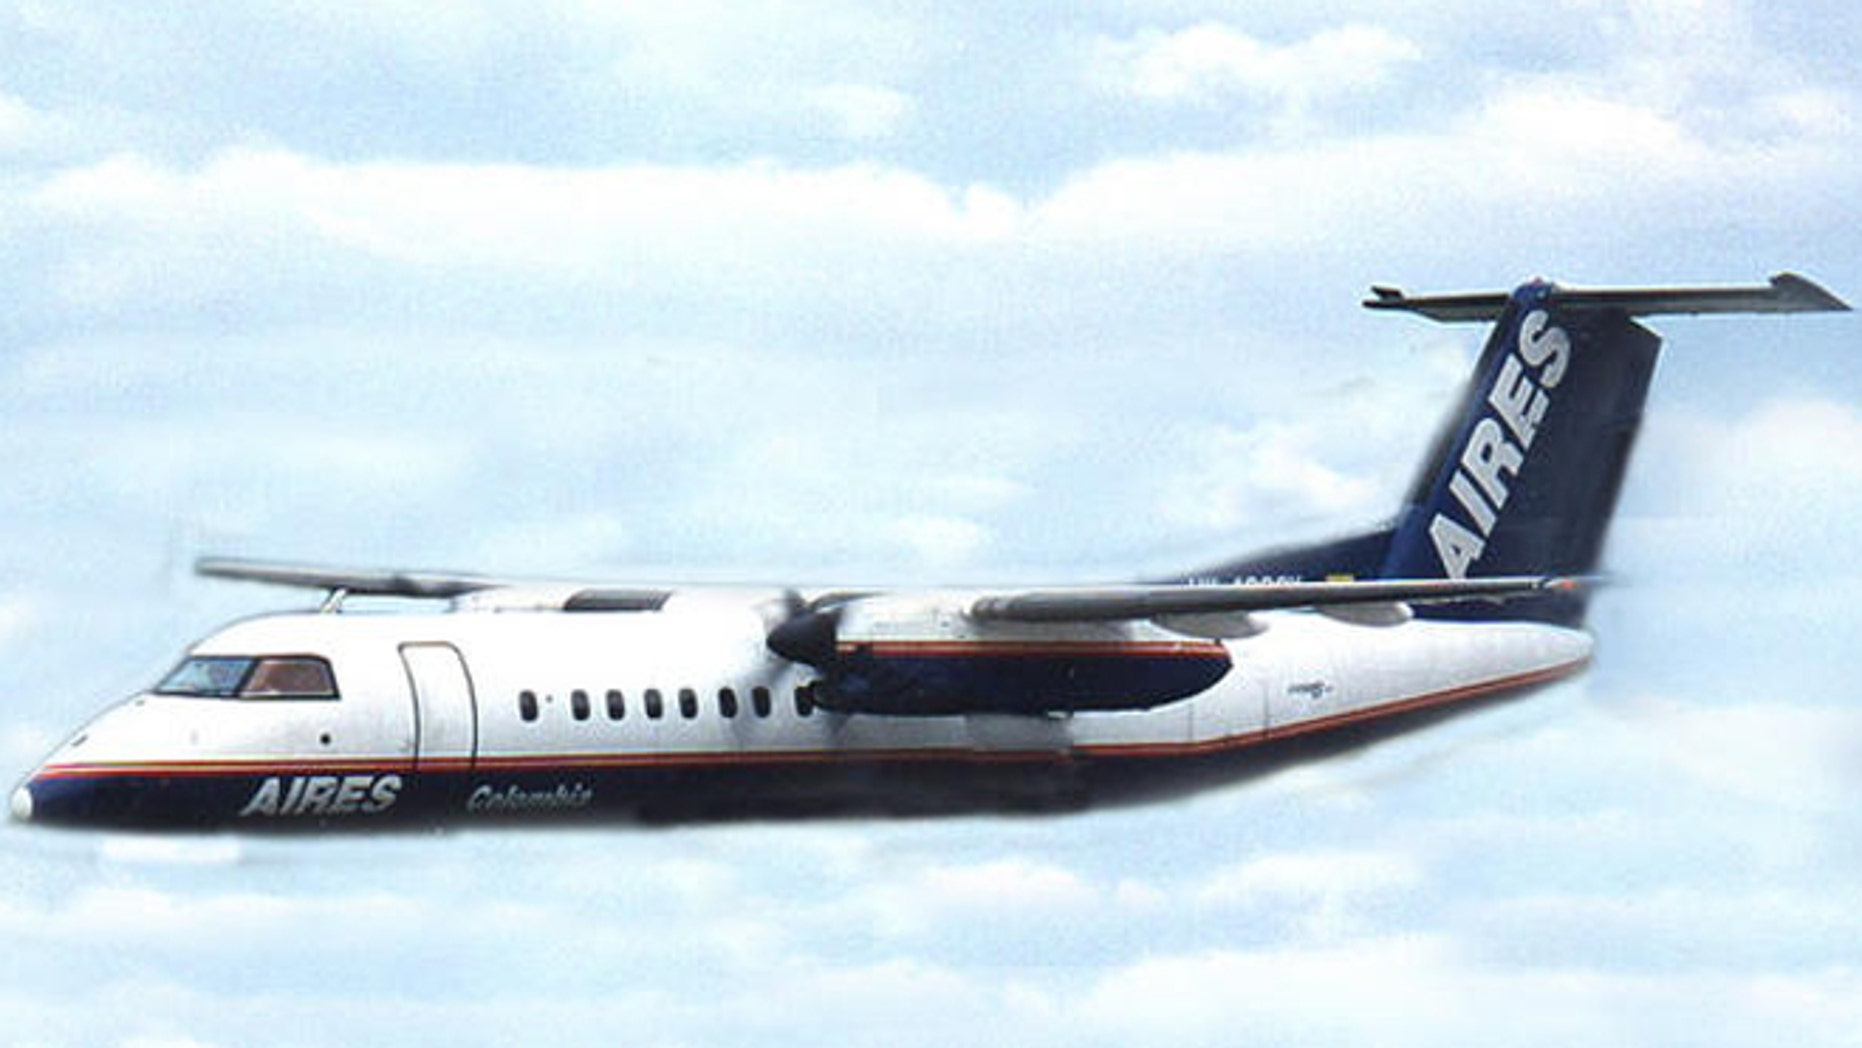 Image of a Dash 8 similar to the one that crashed in Colombia.